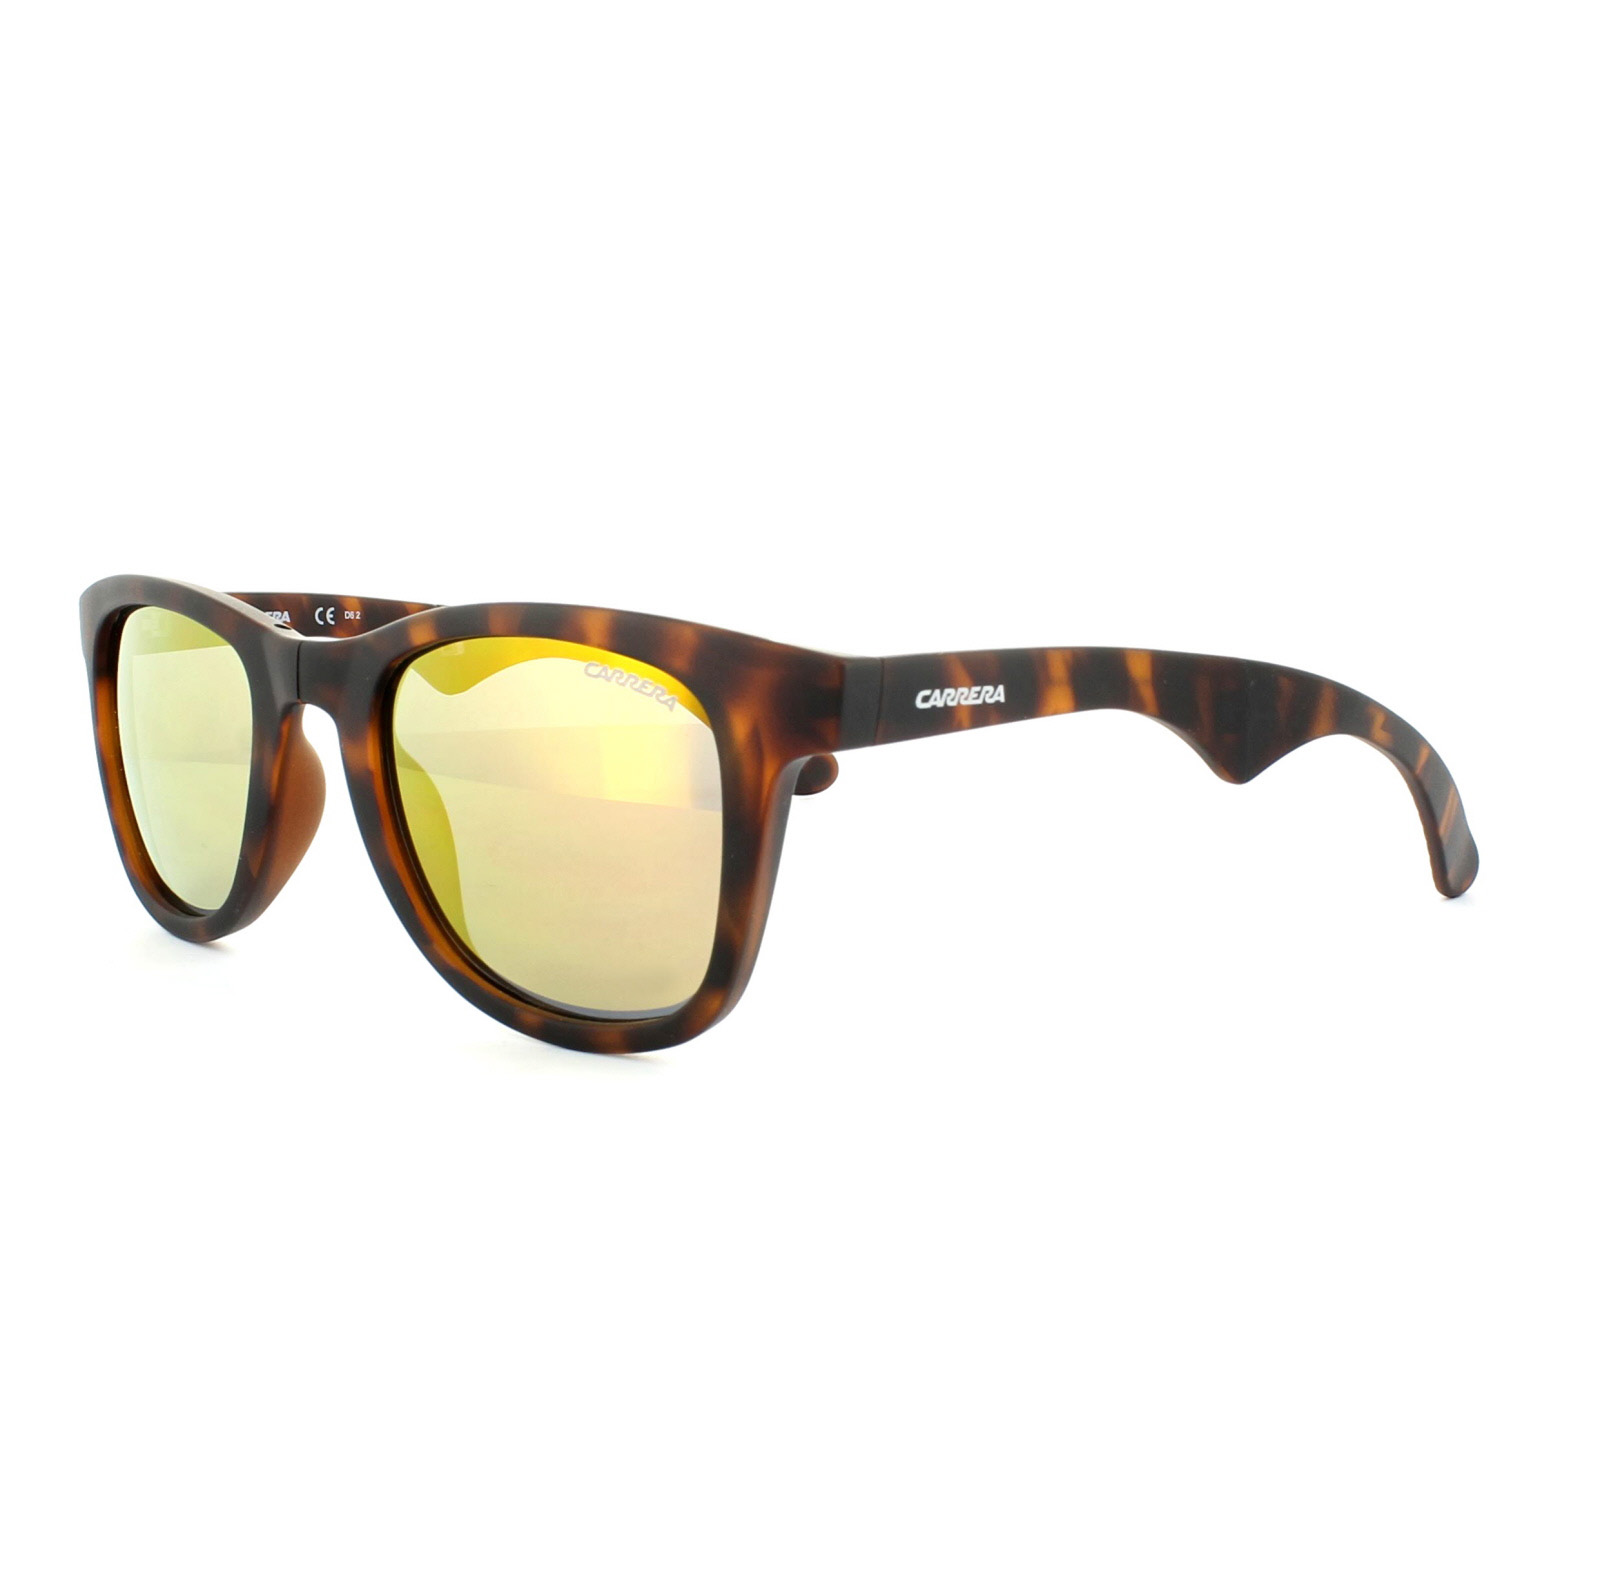 8ae4e4d0da2a Sentinel Carrera Sunglasses Carrera 6000/FD Folding 853 UW Havana Orange  Flash Mirror